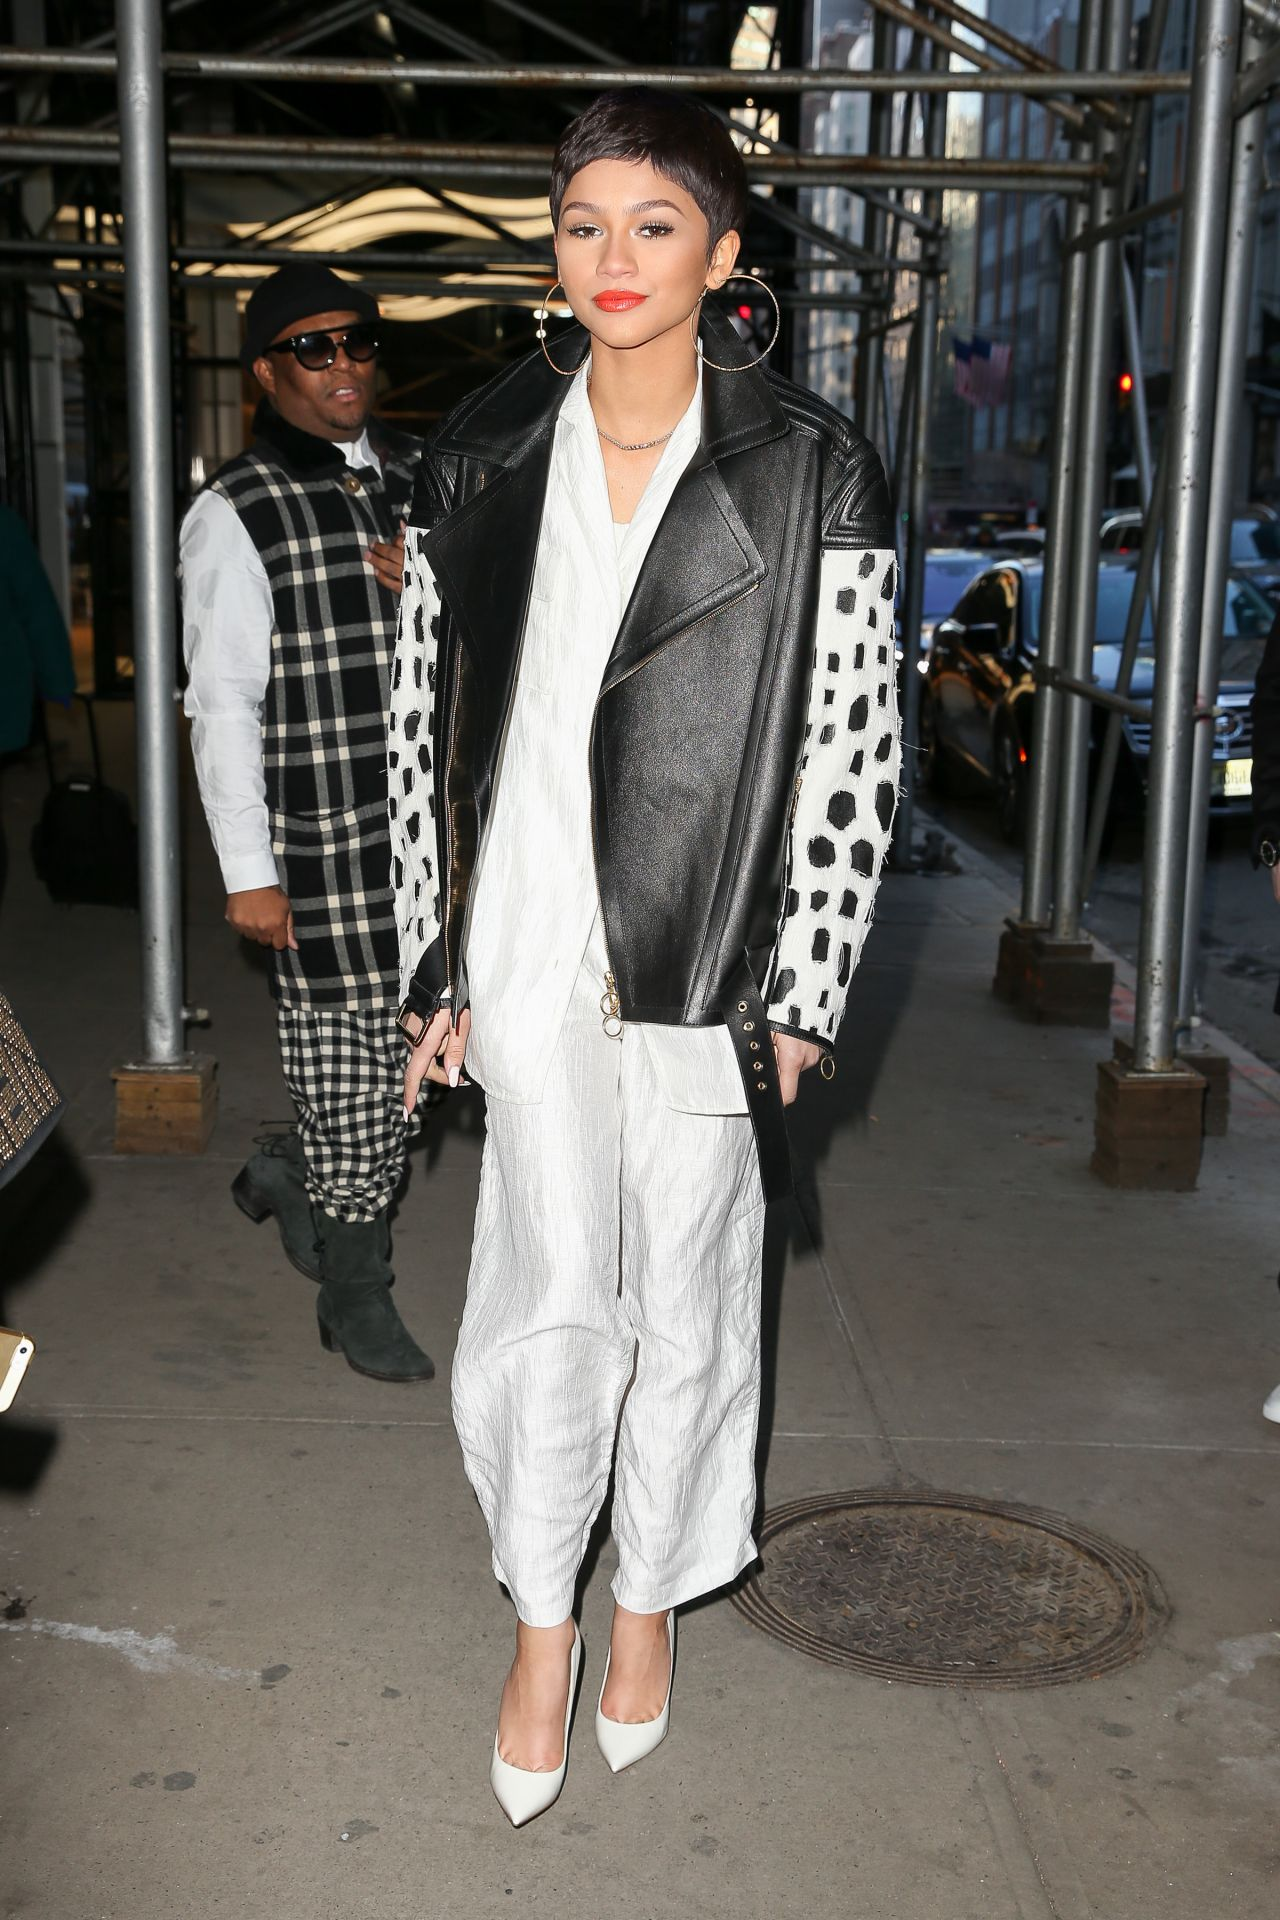 Zendaya Style 2015 Celebrity Photos Out In New York City February